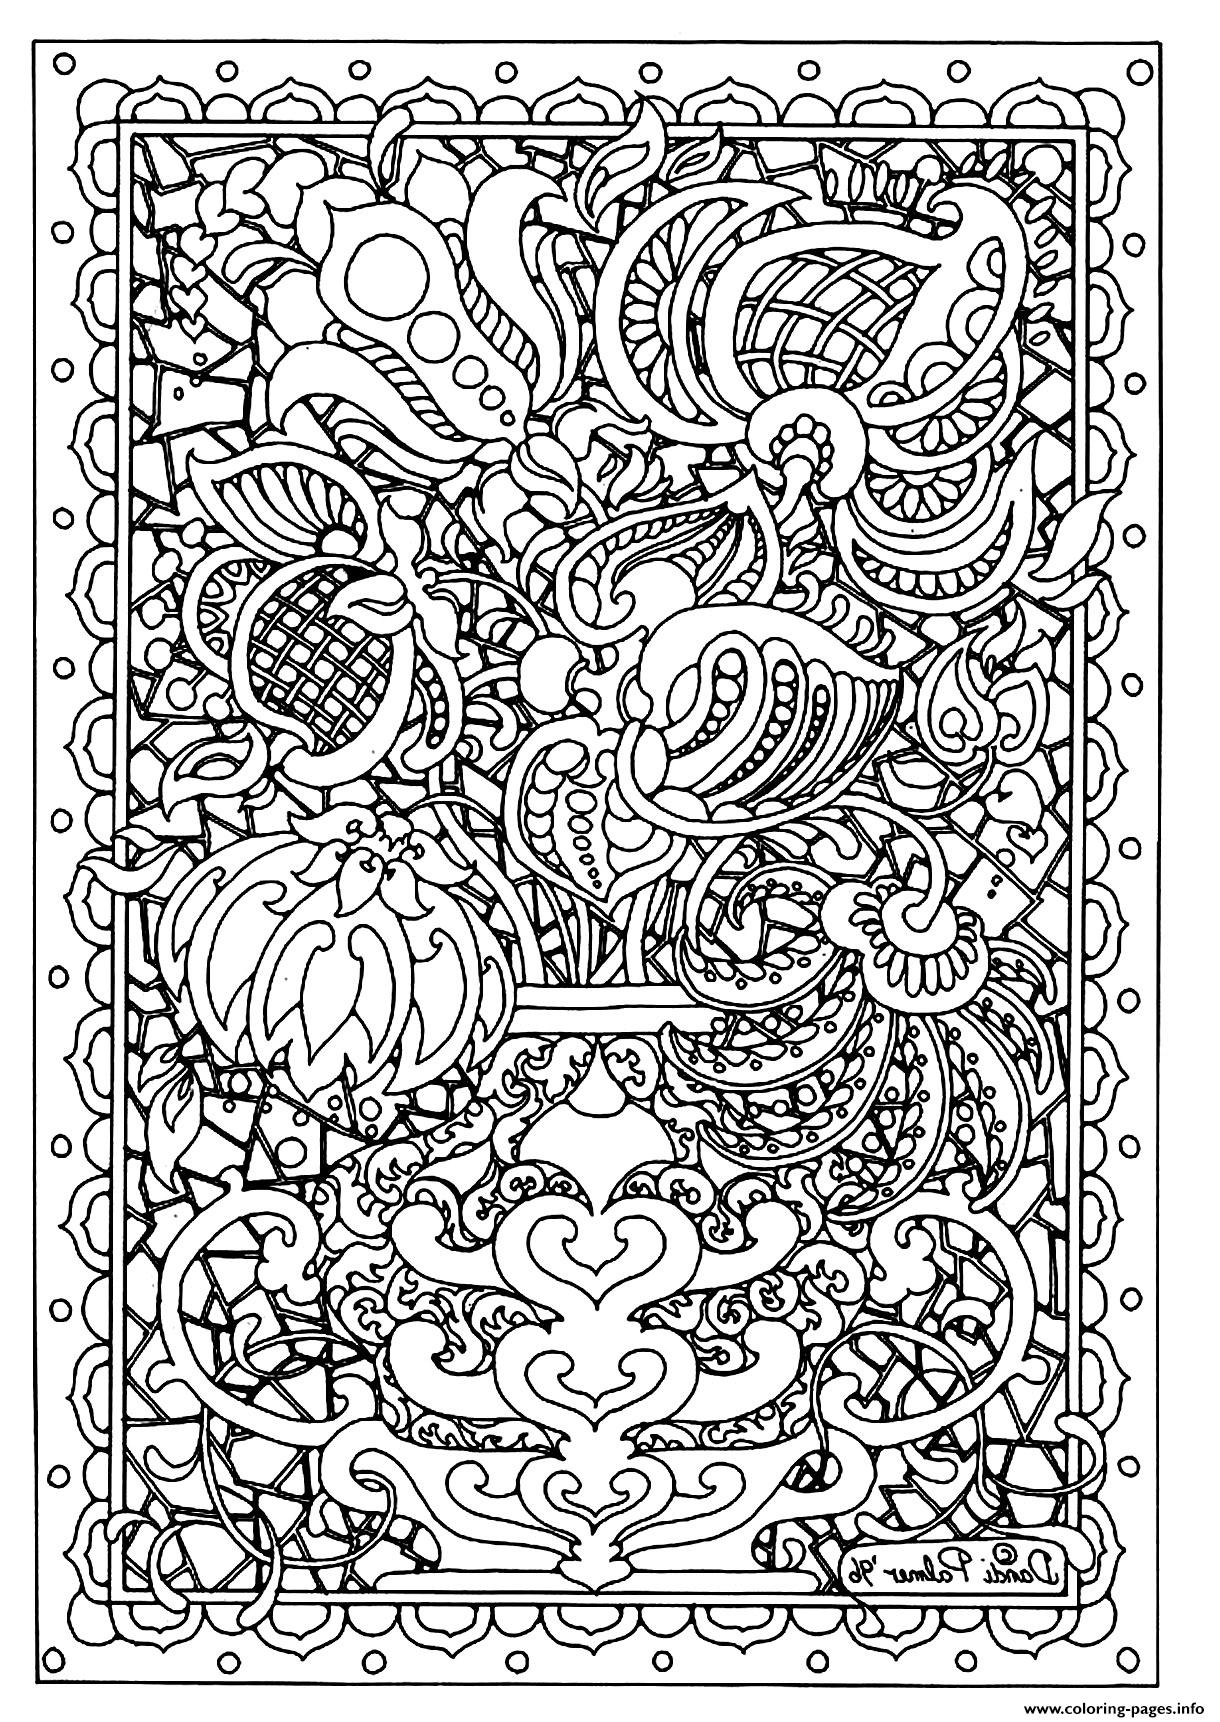 Adult flower difficult coloring pages printable for Coloring pages for adults difficult flower